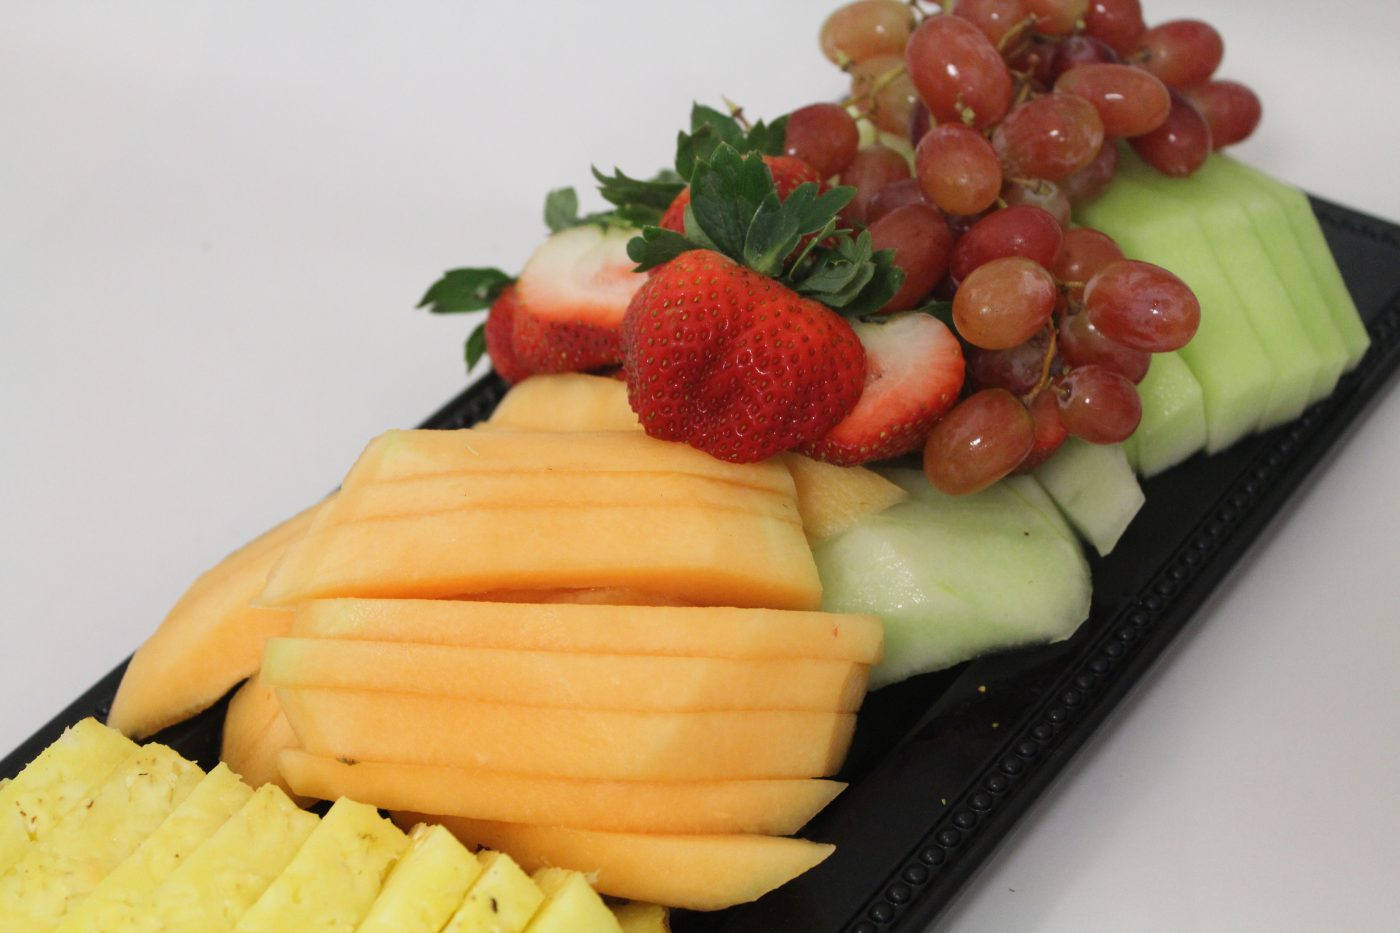 Sliced-Fruit-Tray-e1526522876963